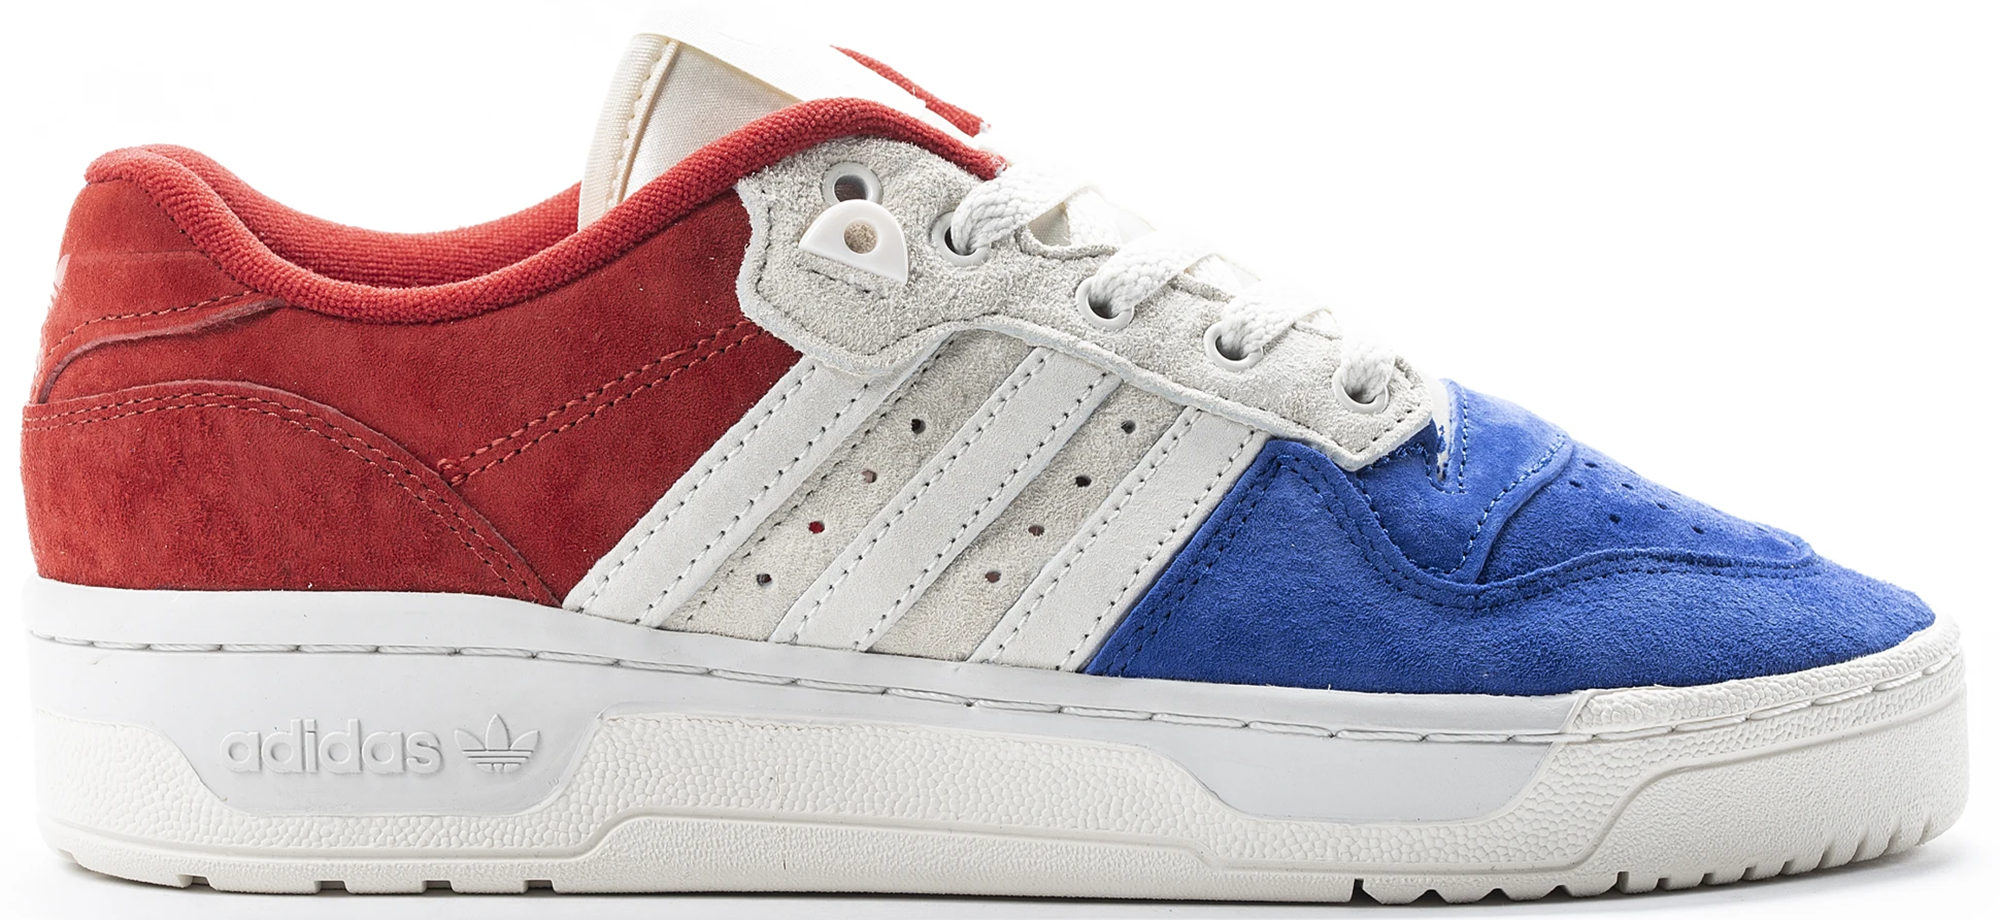 adidas Rivalry Low XLD Royal White Red